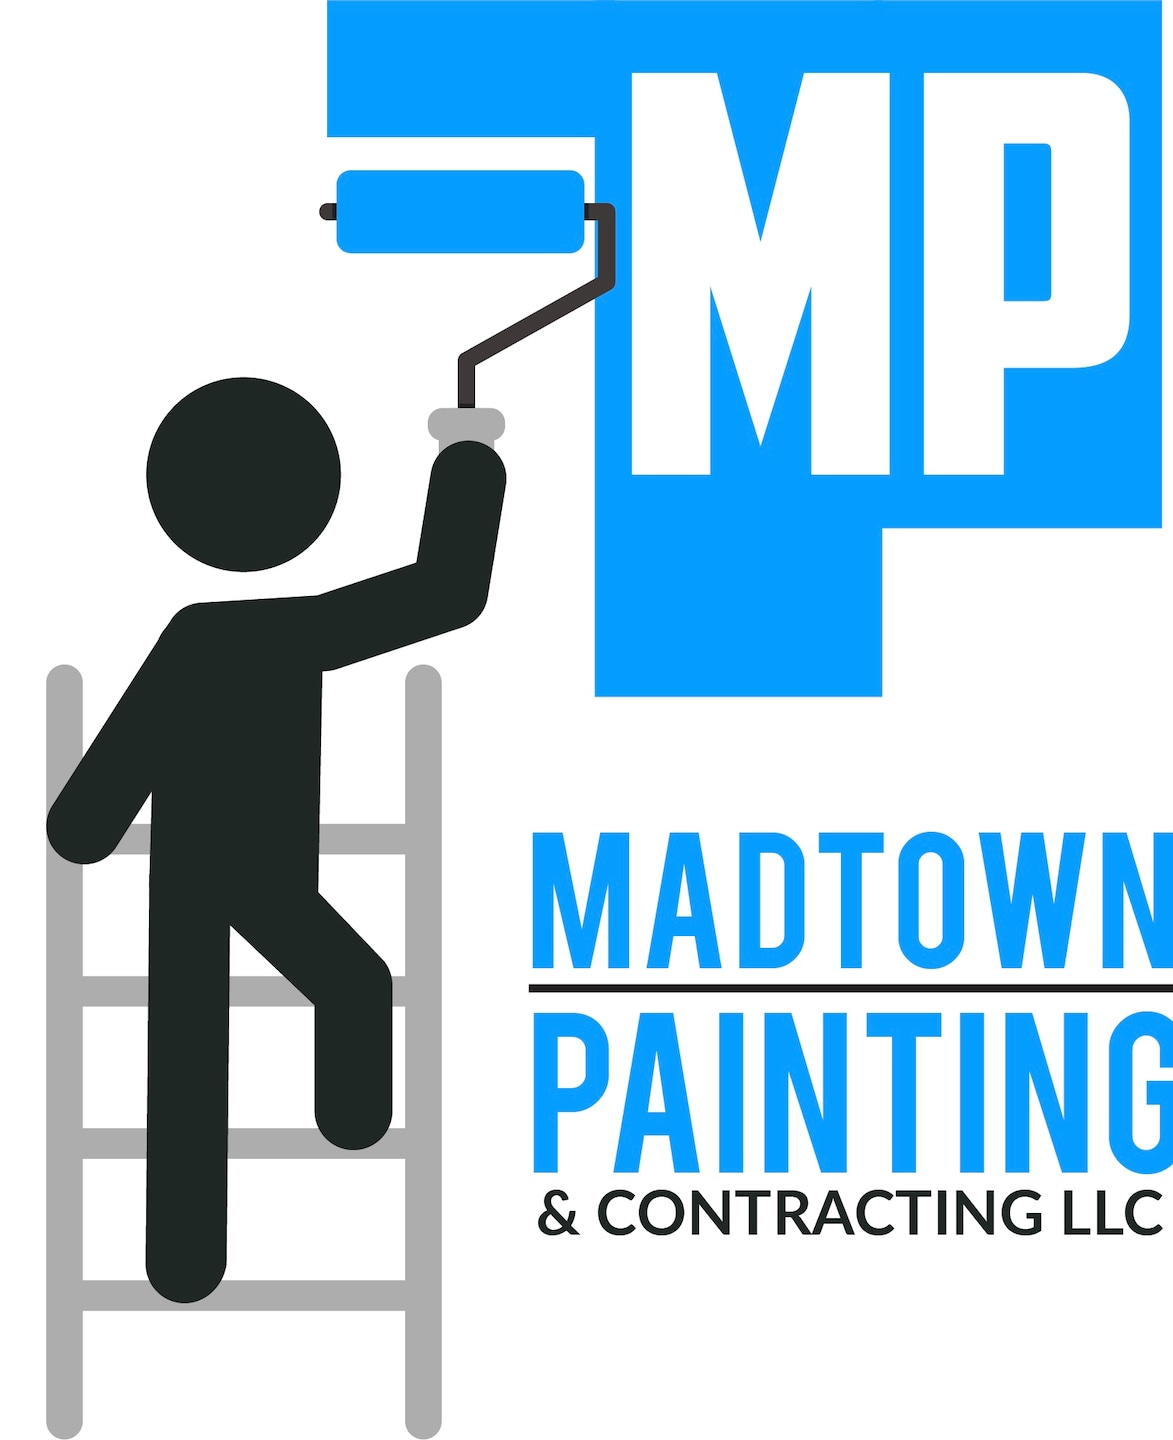 MadTown Painting & Contracting LLC